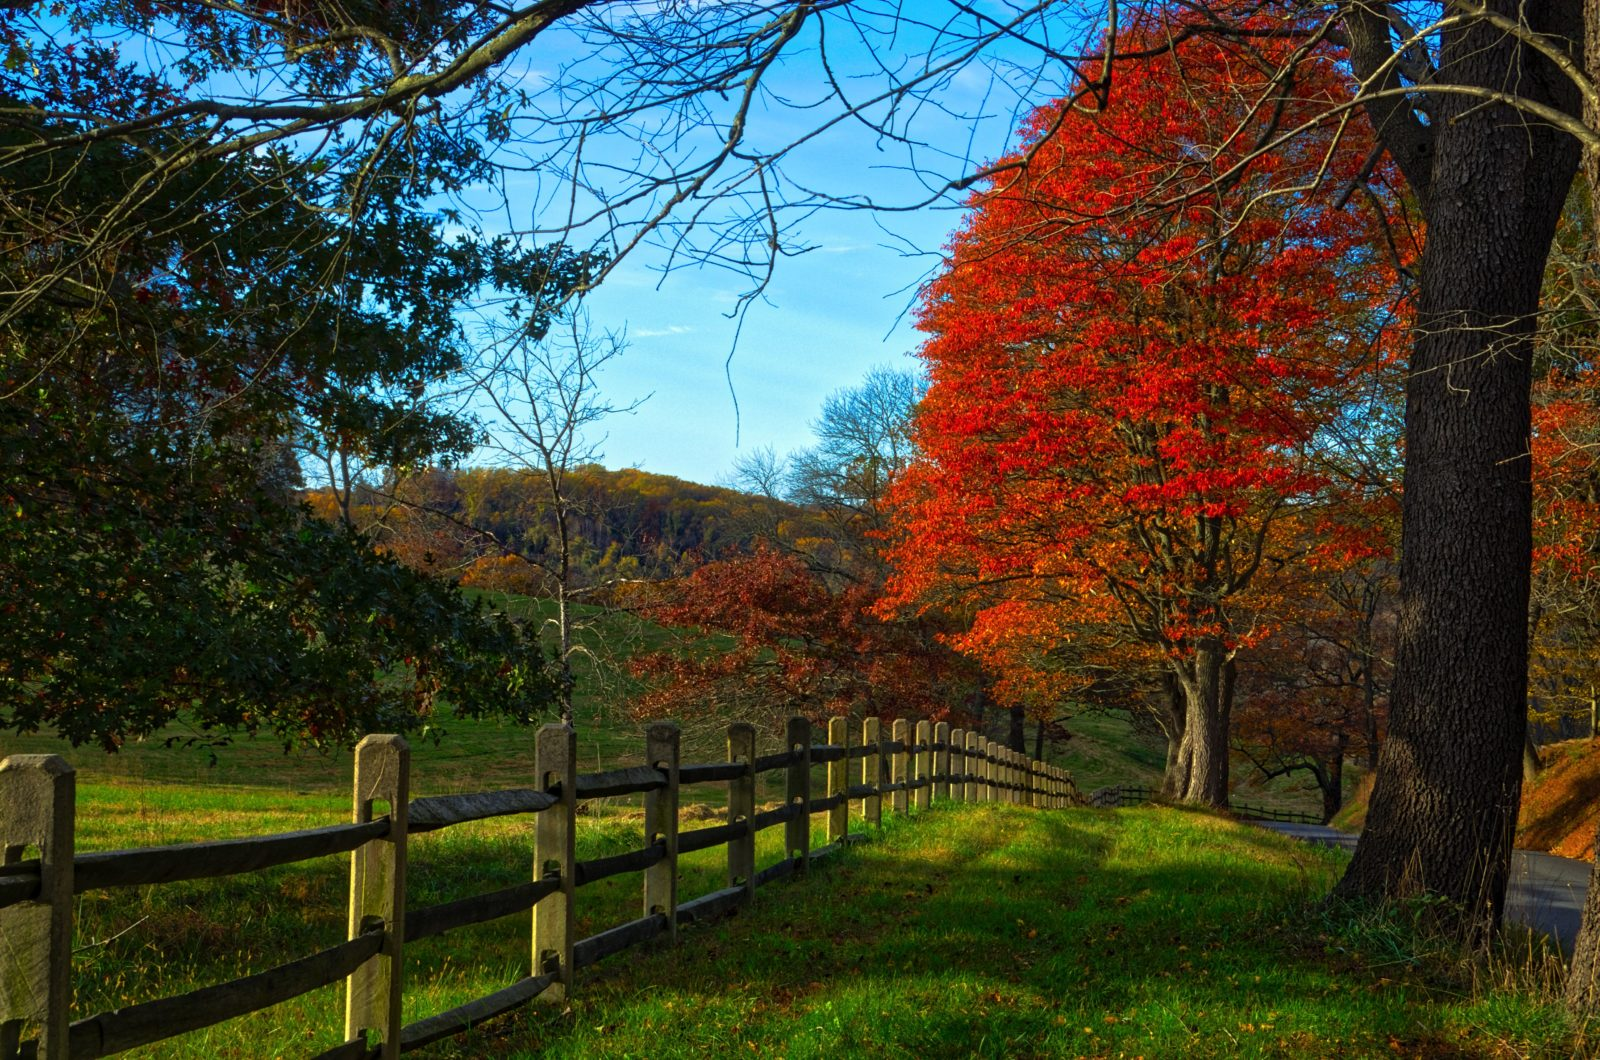 Country Lane in the Fall